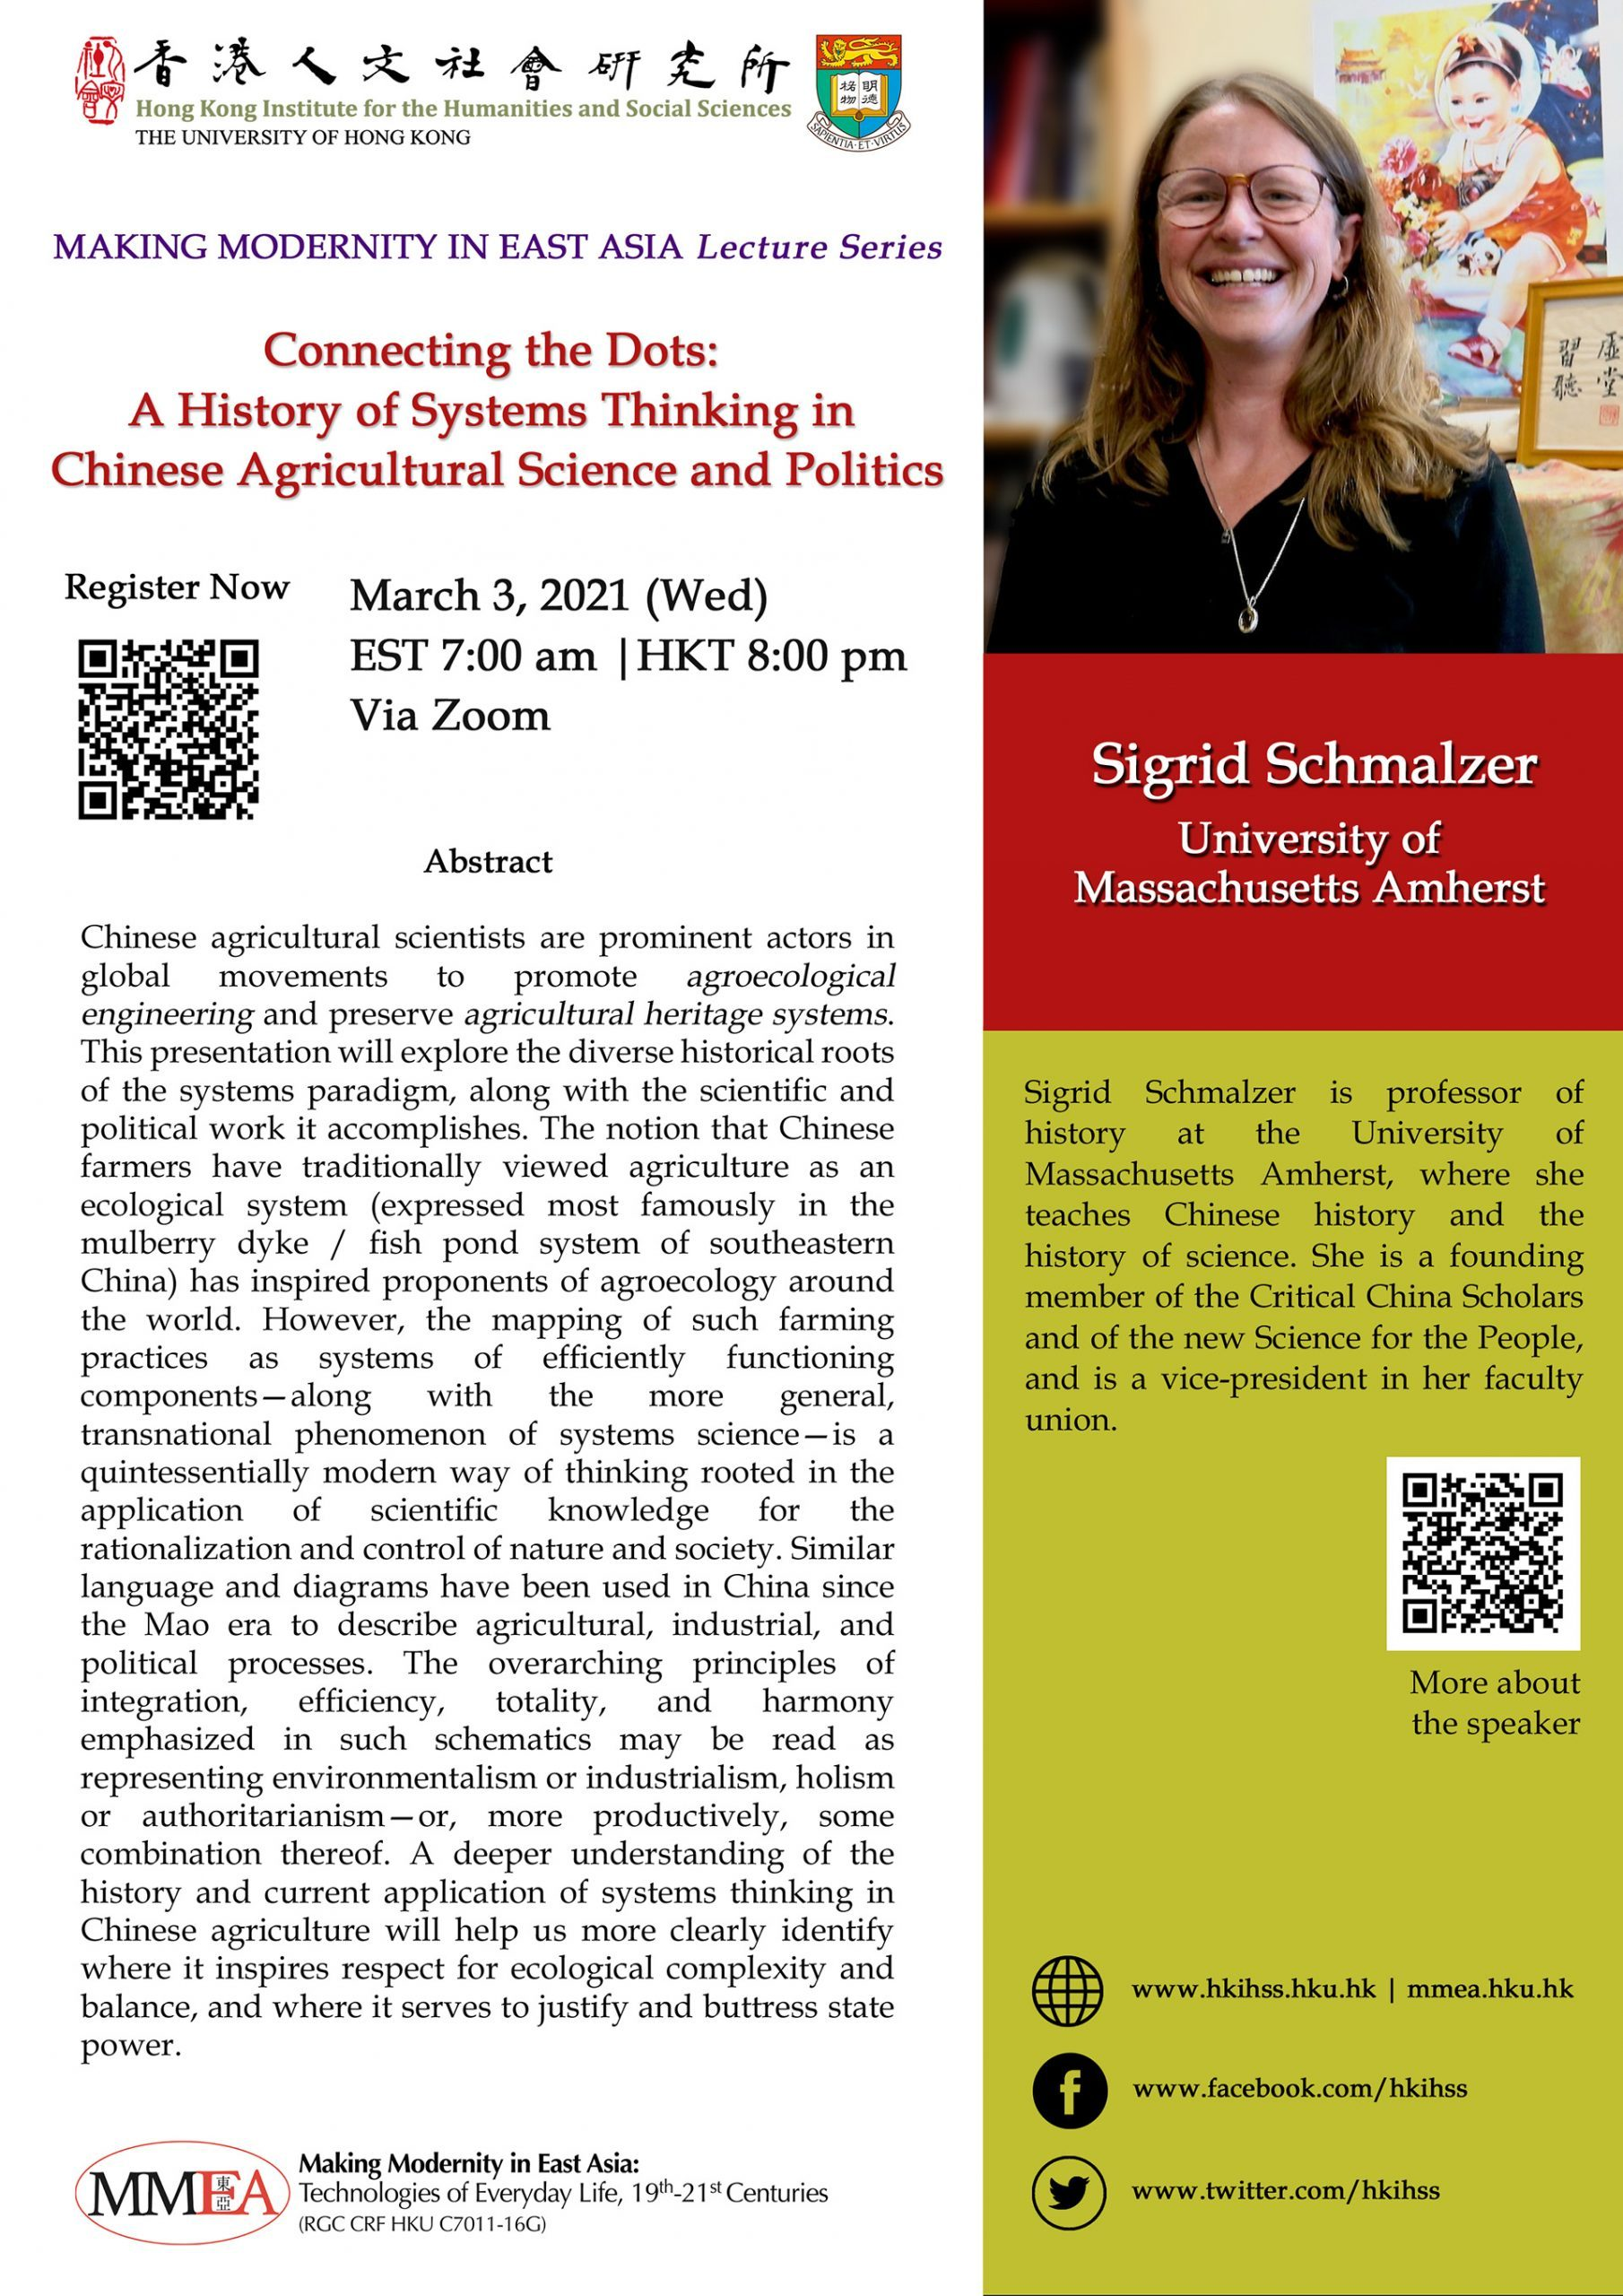 """MMEA Lecture Series """"Connecting the Dots: A History of Systems Thinking in Chinese Agricultural Science and Politics"""" by Professor Sigrid Schmalzer (March 3, 2021)"""